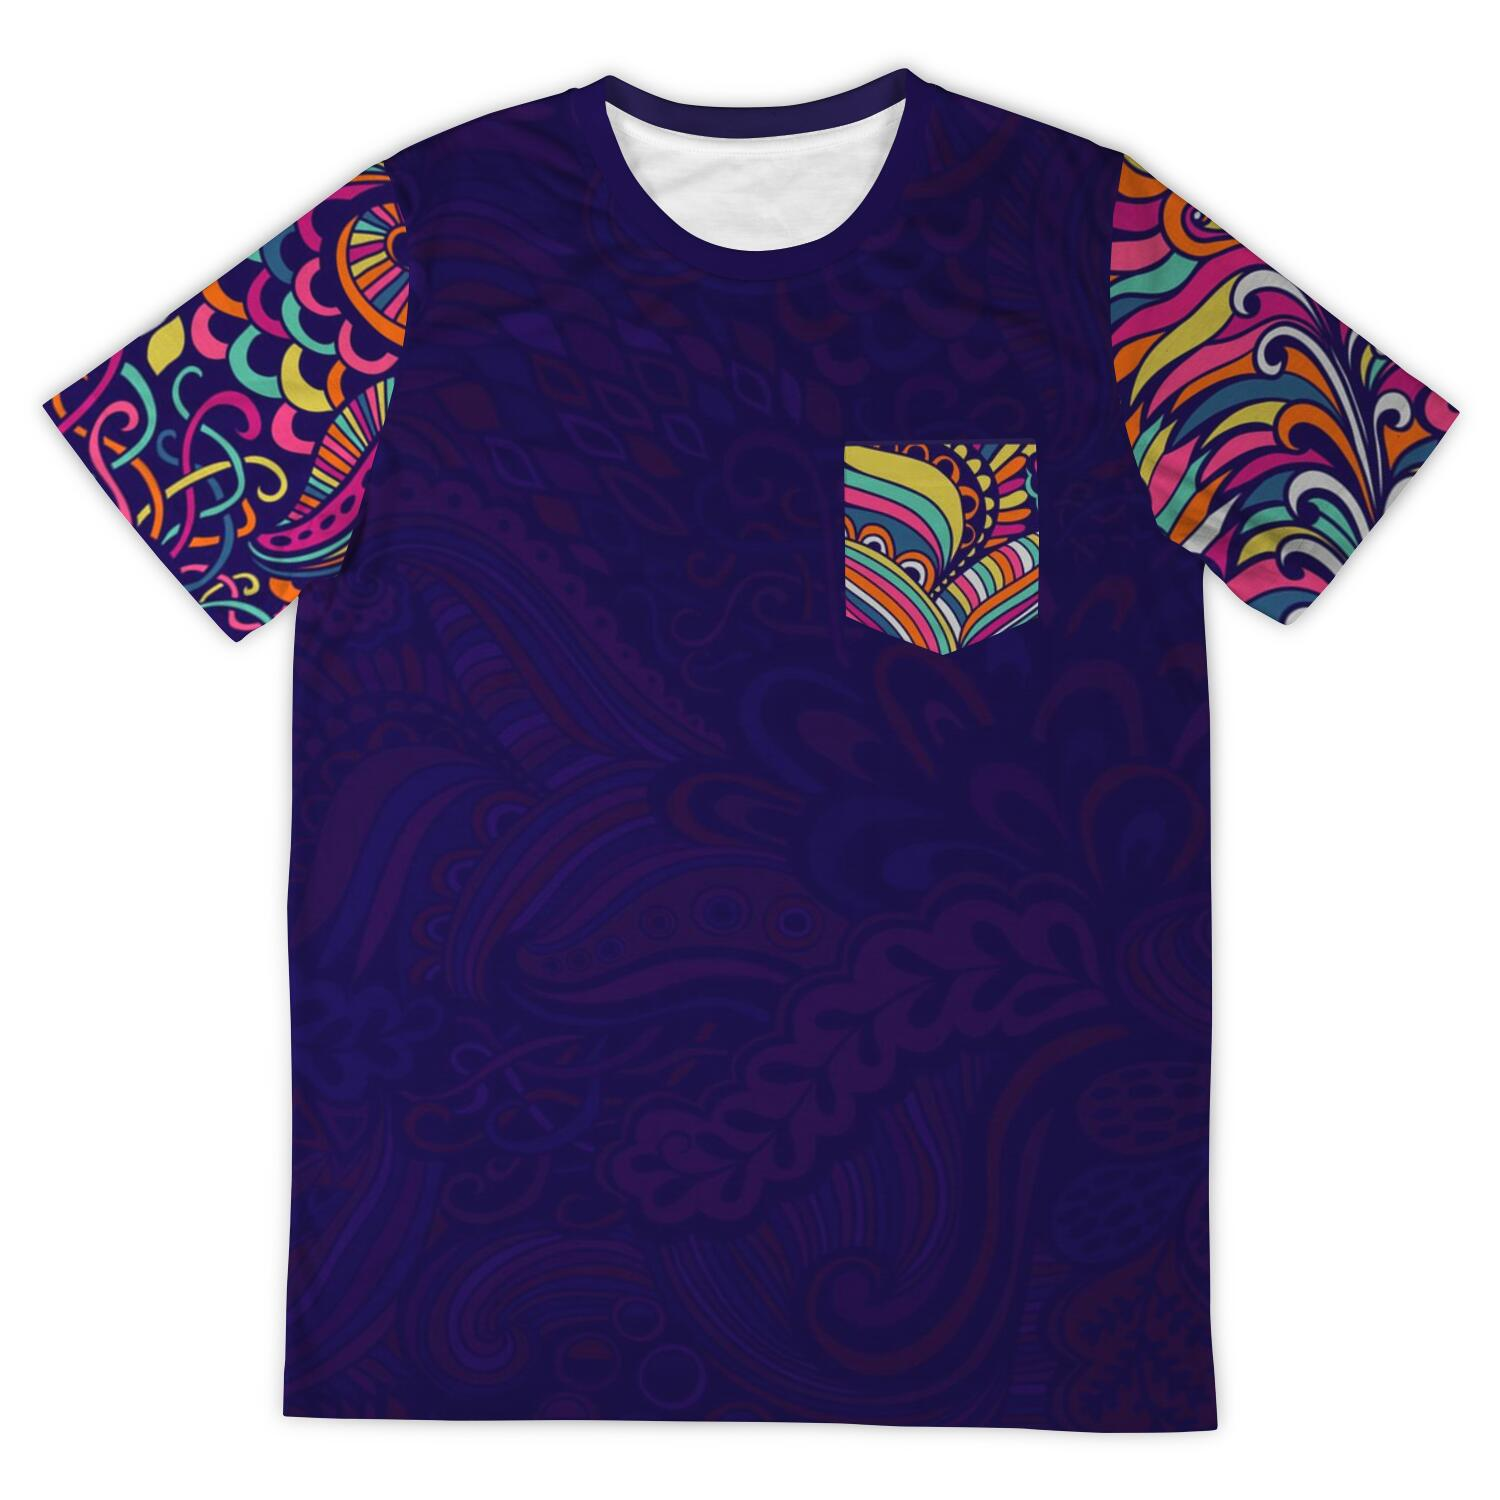 Psychedelic Mess V1 Unisex Tee